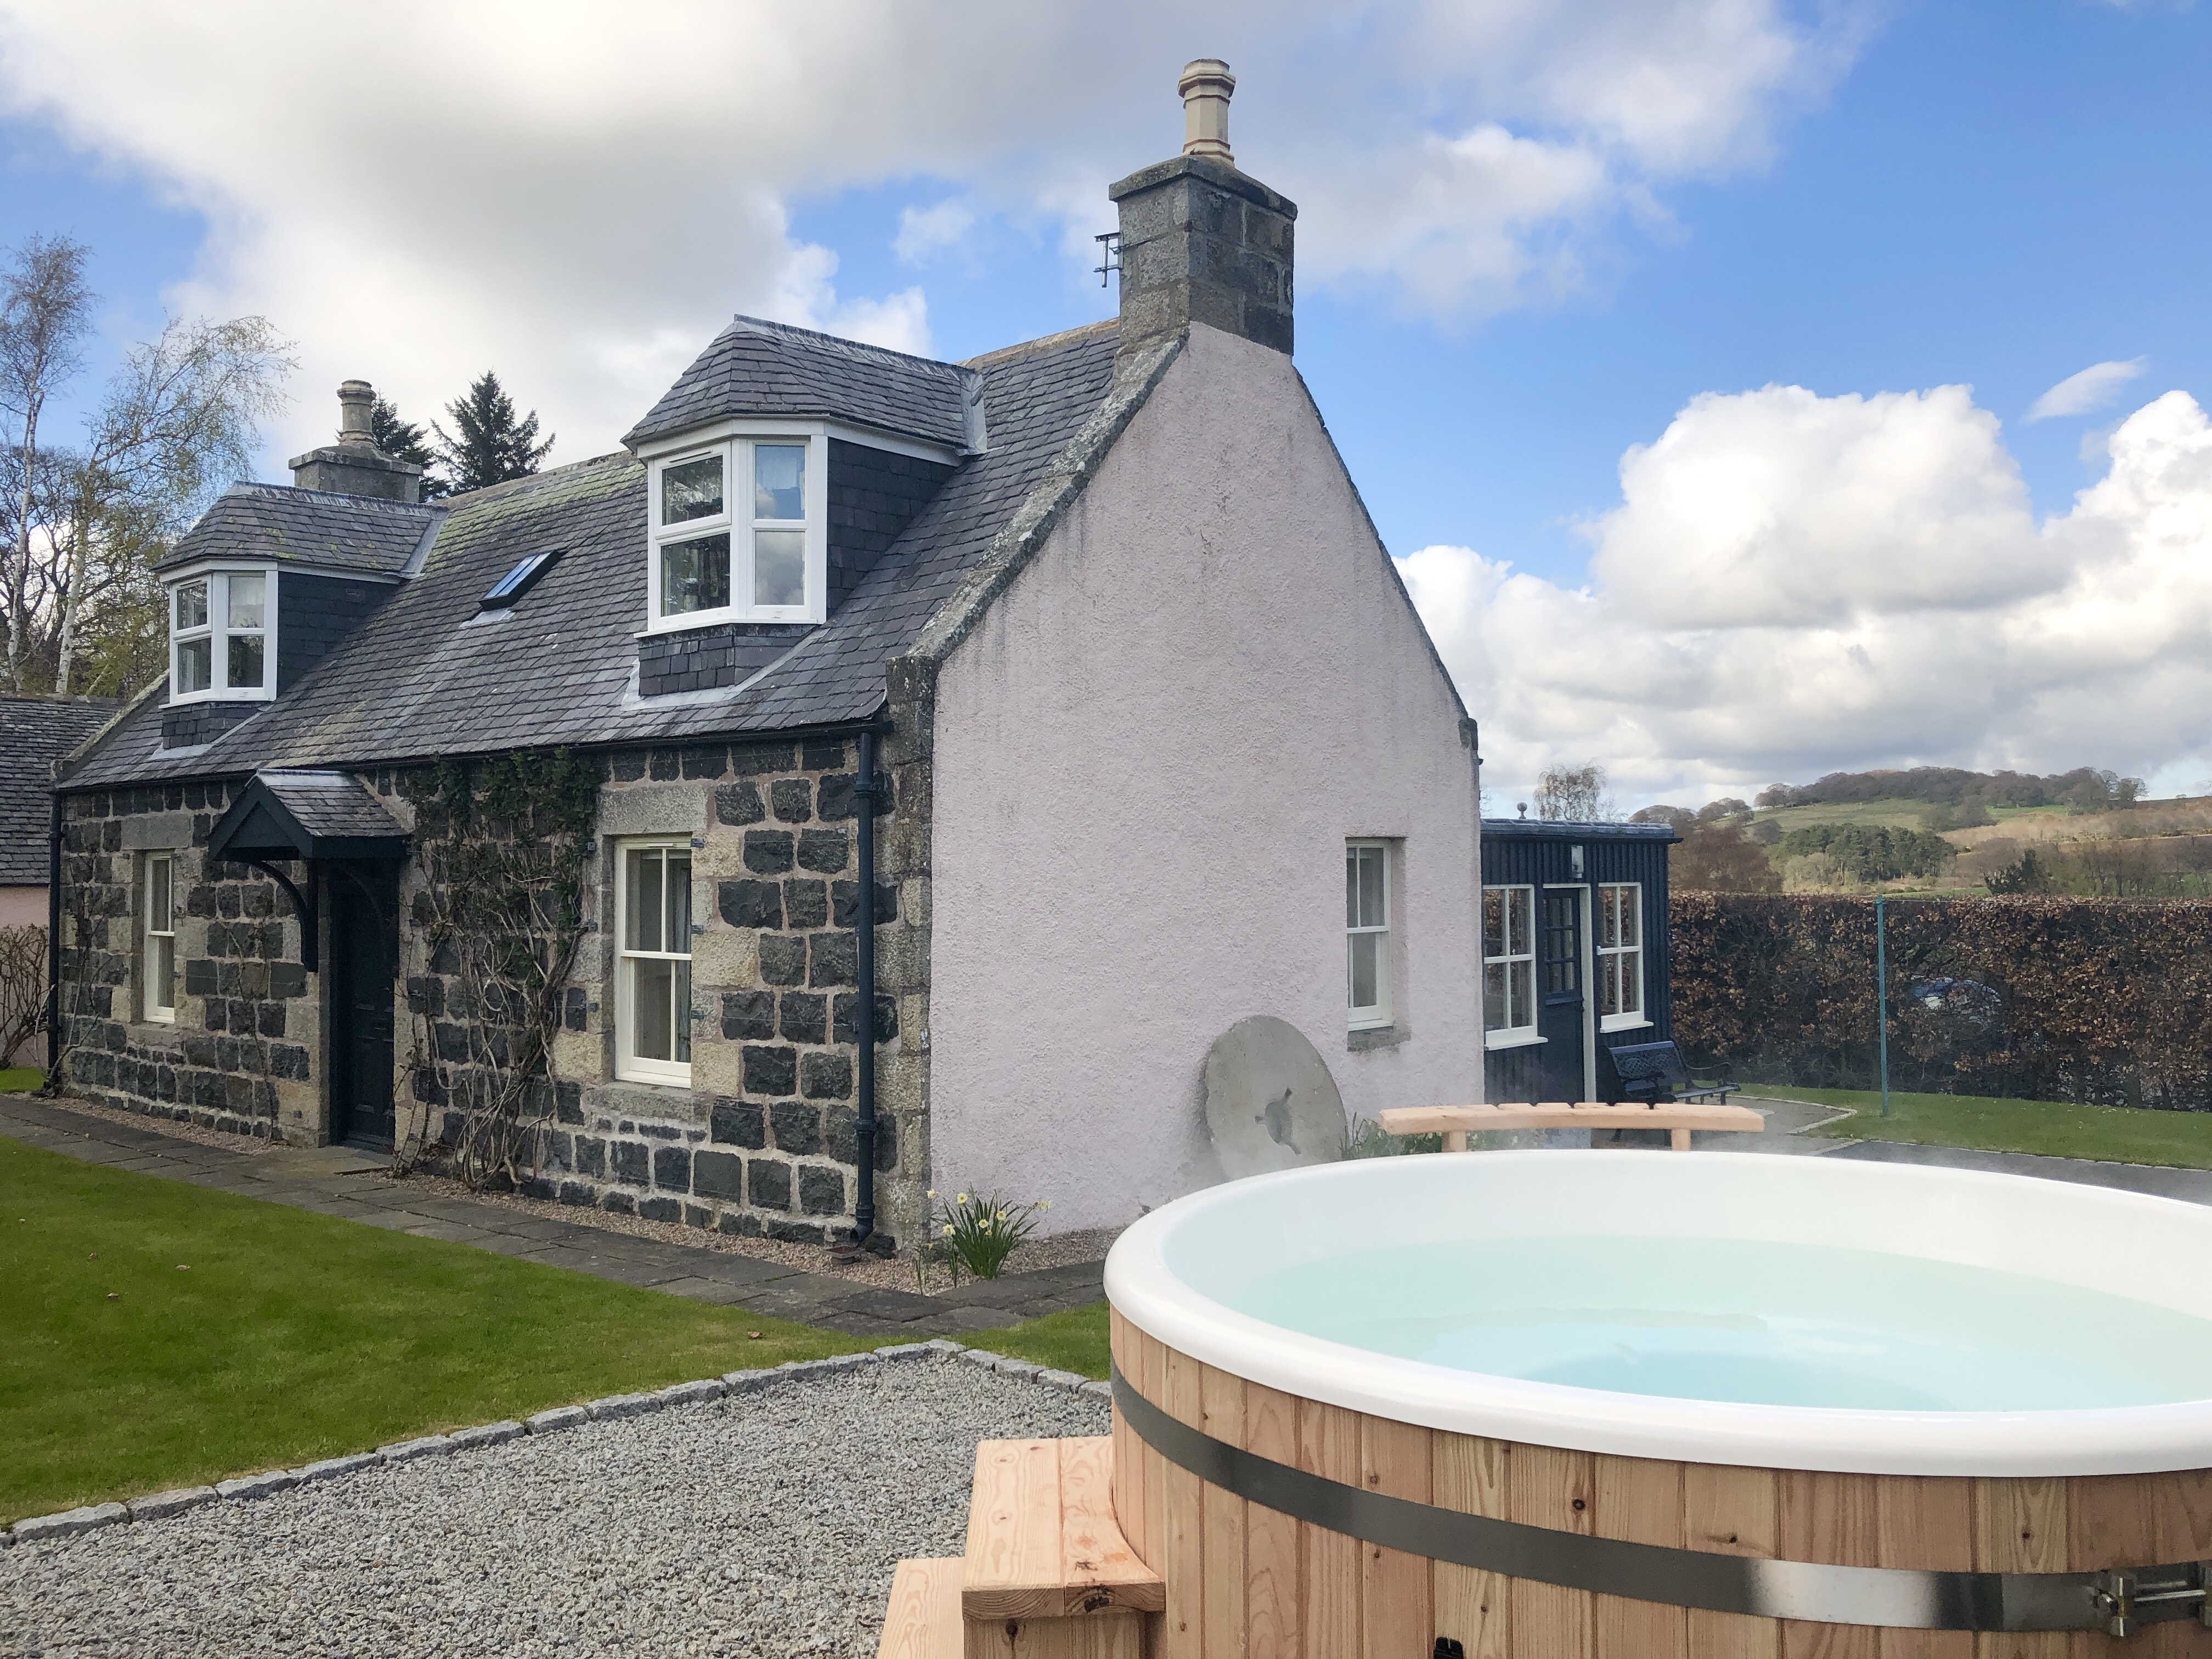 Bailies cottage private garden and chocolate box exterior with fire pit and seating.